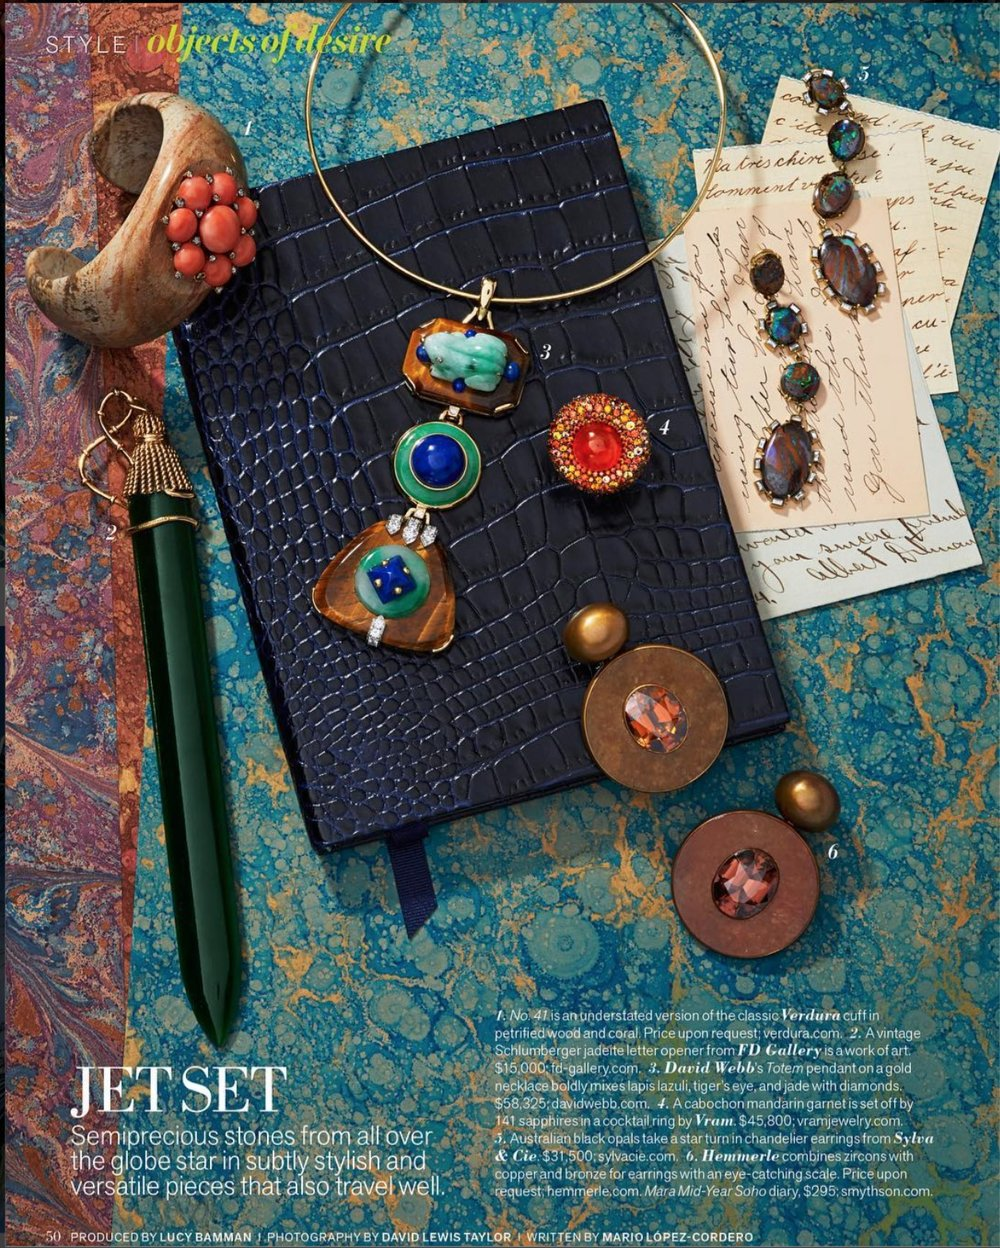 VRAM Jewelry mandarin garnet and sapphire ring Veranda Magazine